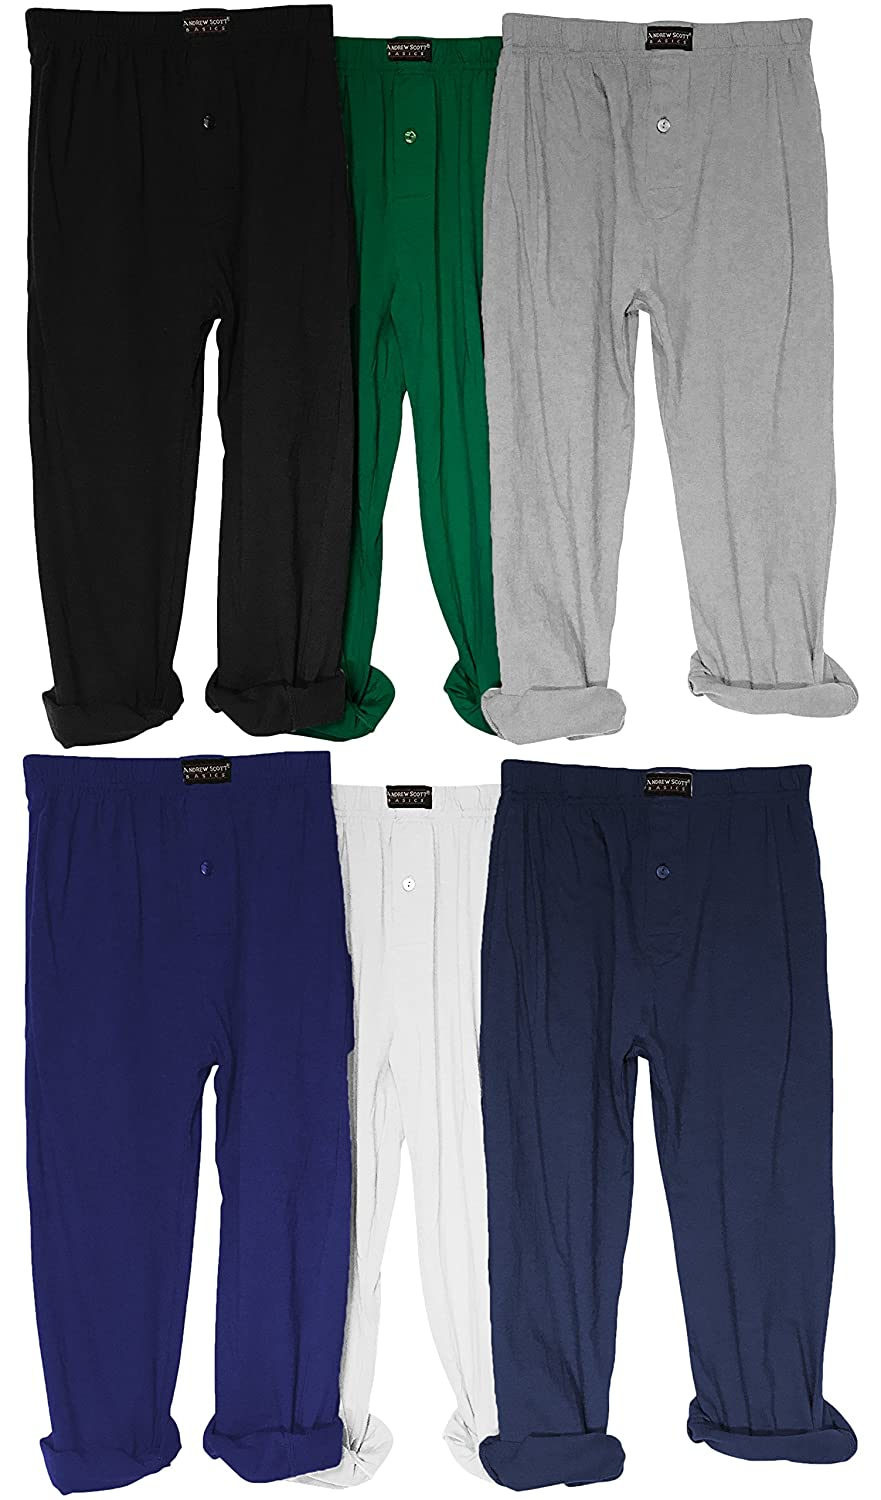 Boy's 3 Pack or 6 Pack Jersey Knit Soft & Light Active Yoga/Beach Pants 78444X3